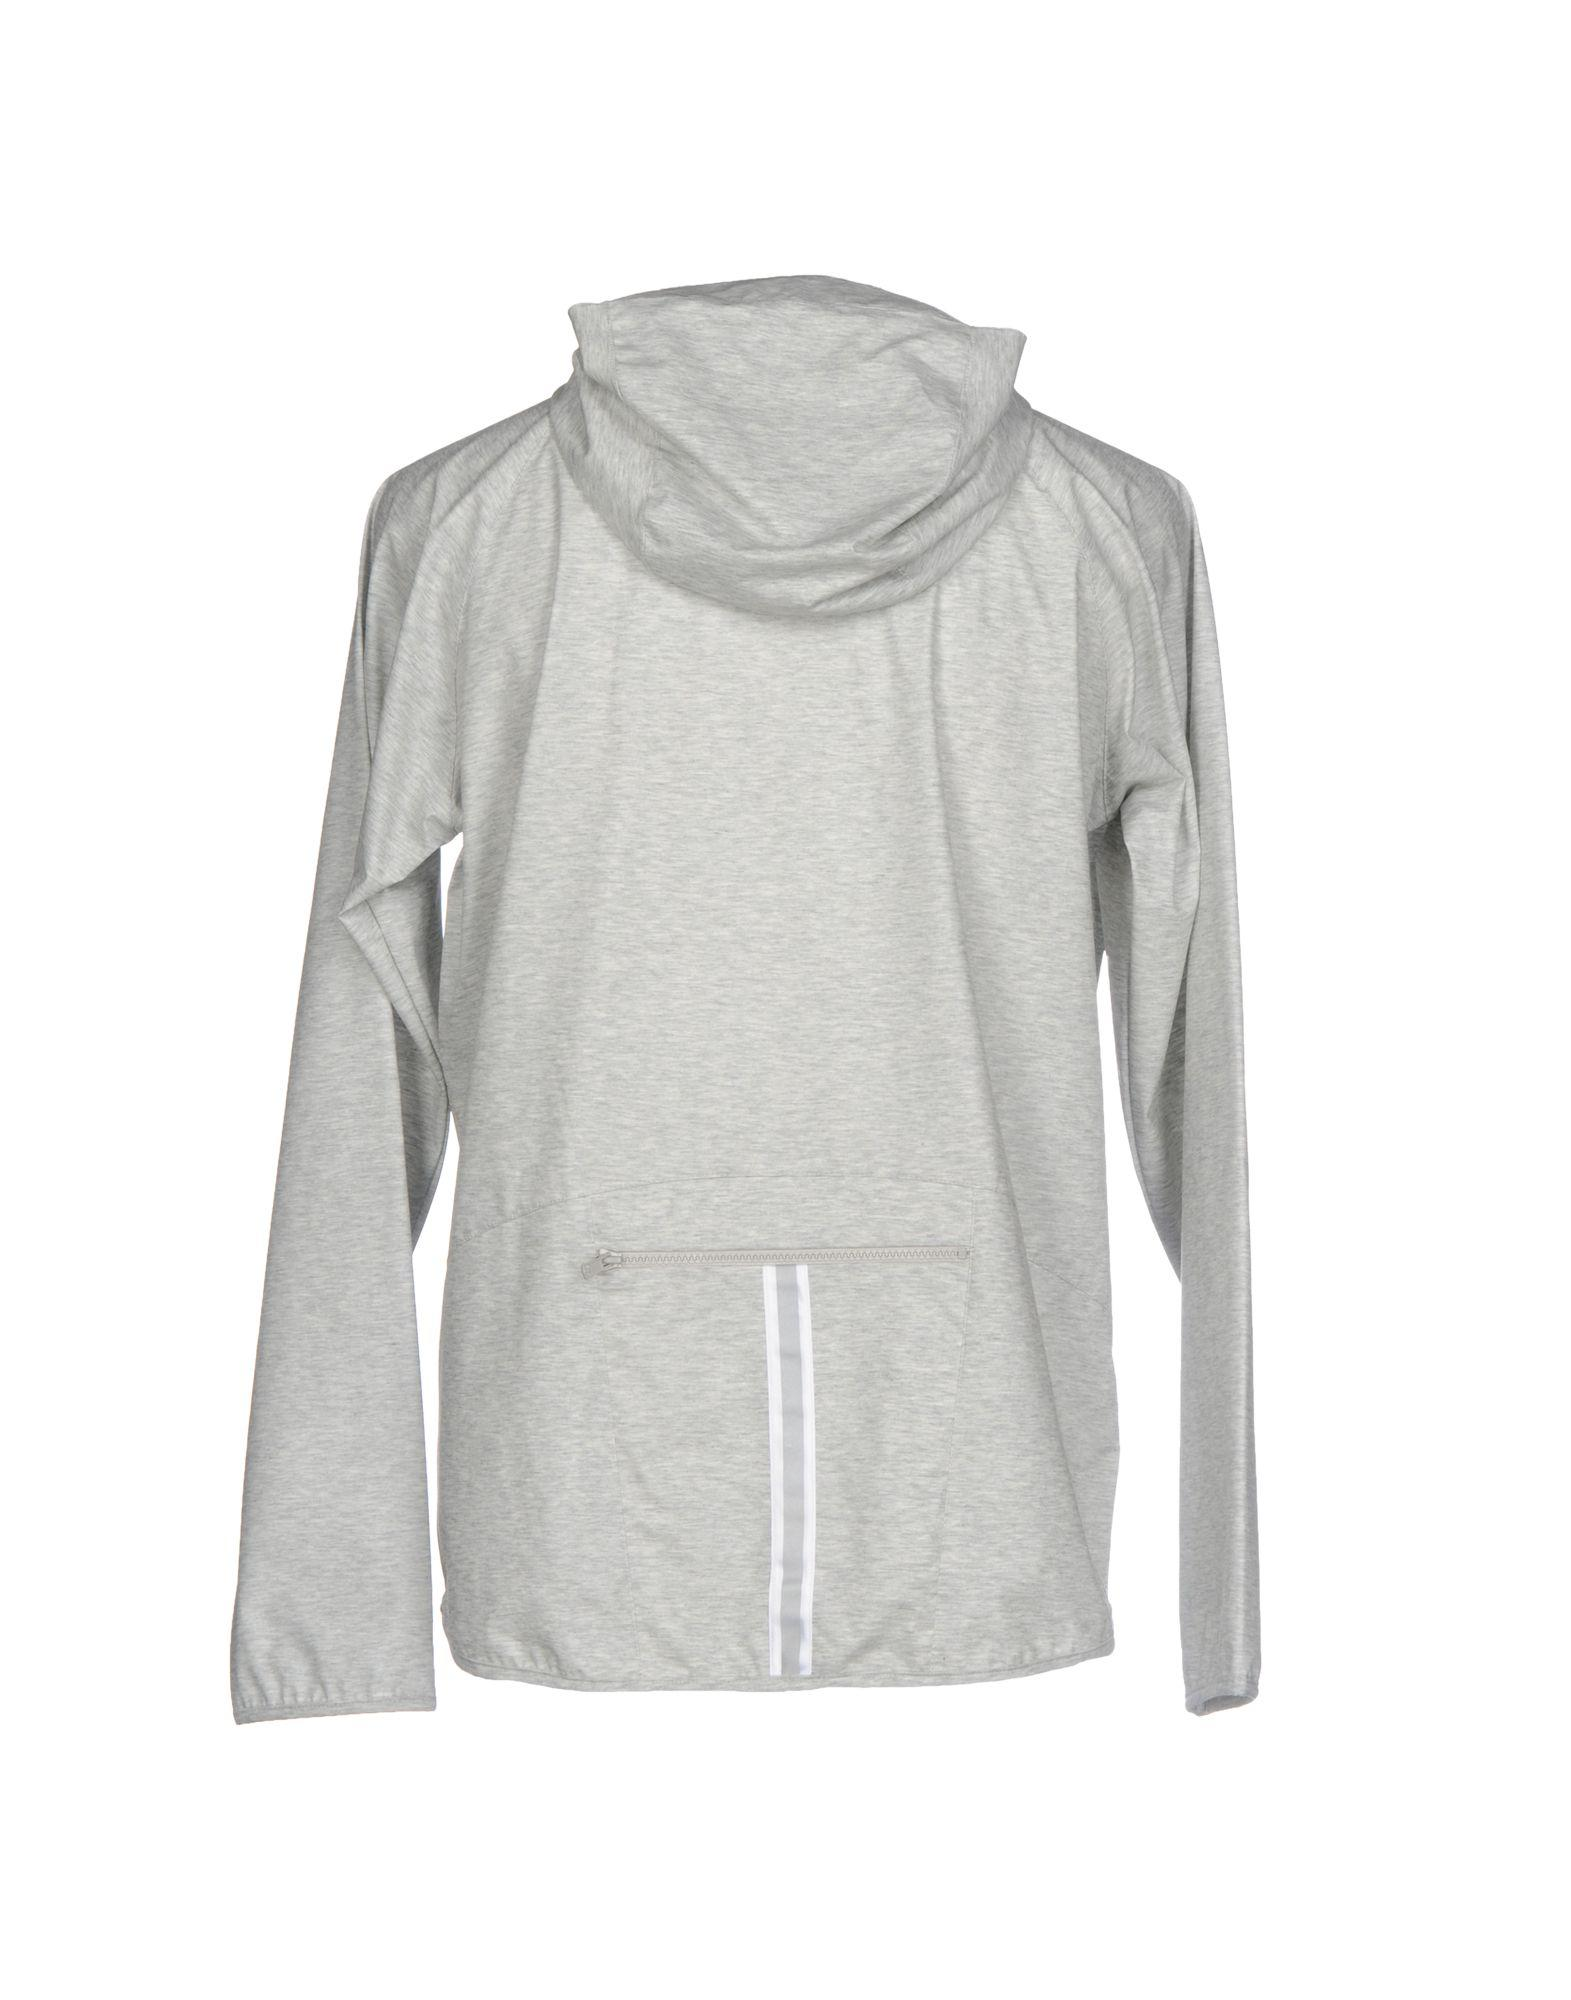 MILANO 140 Cotton Jacket in Light Grey (Grey) for Men